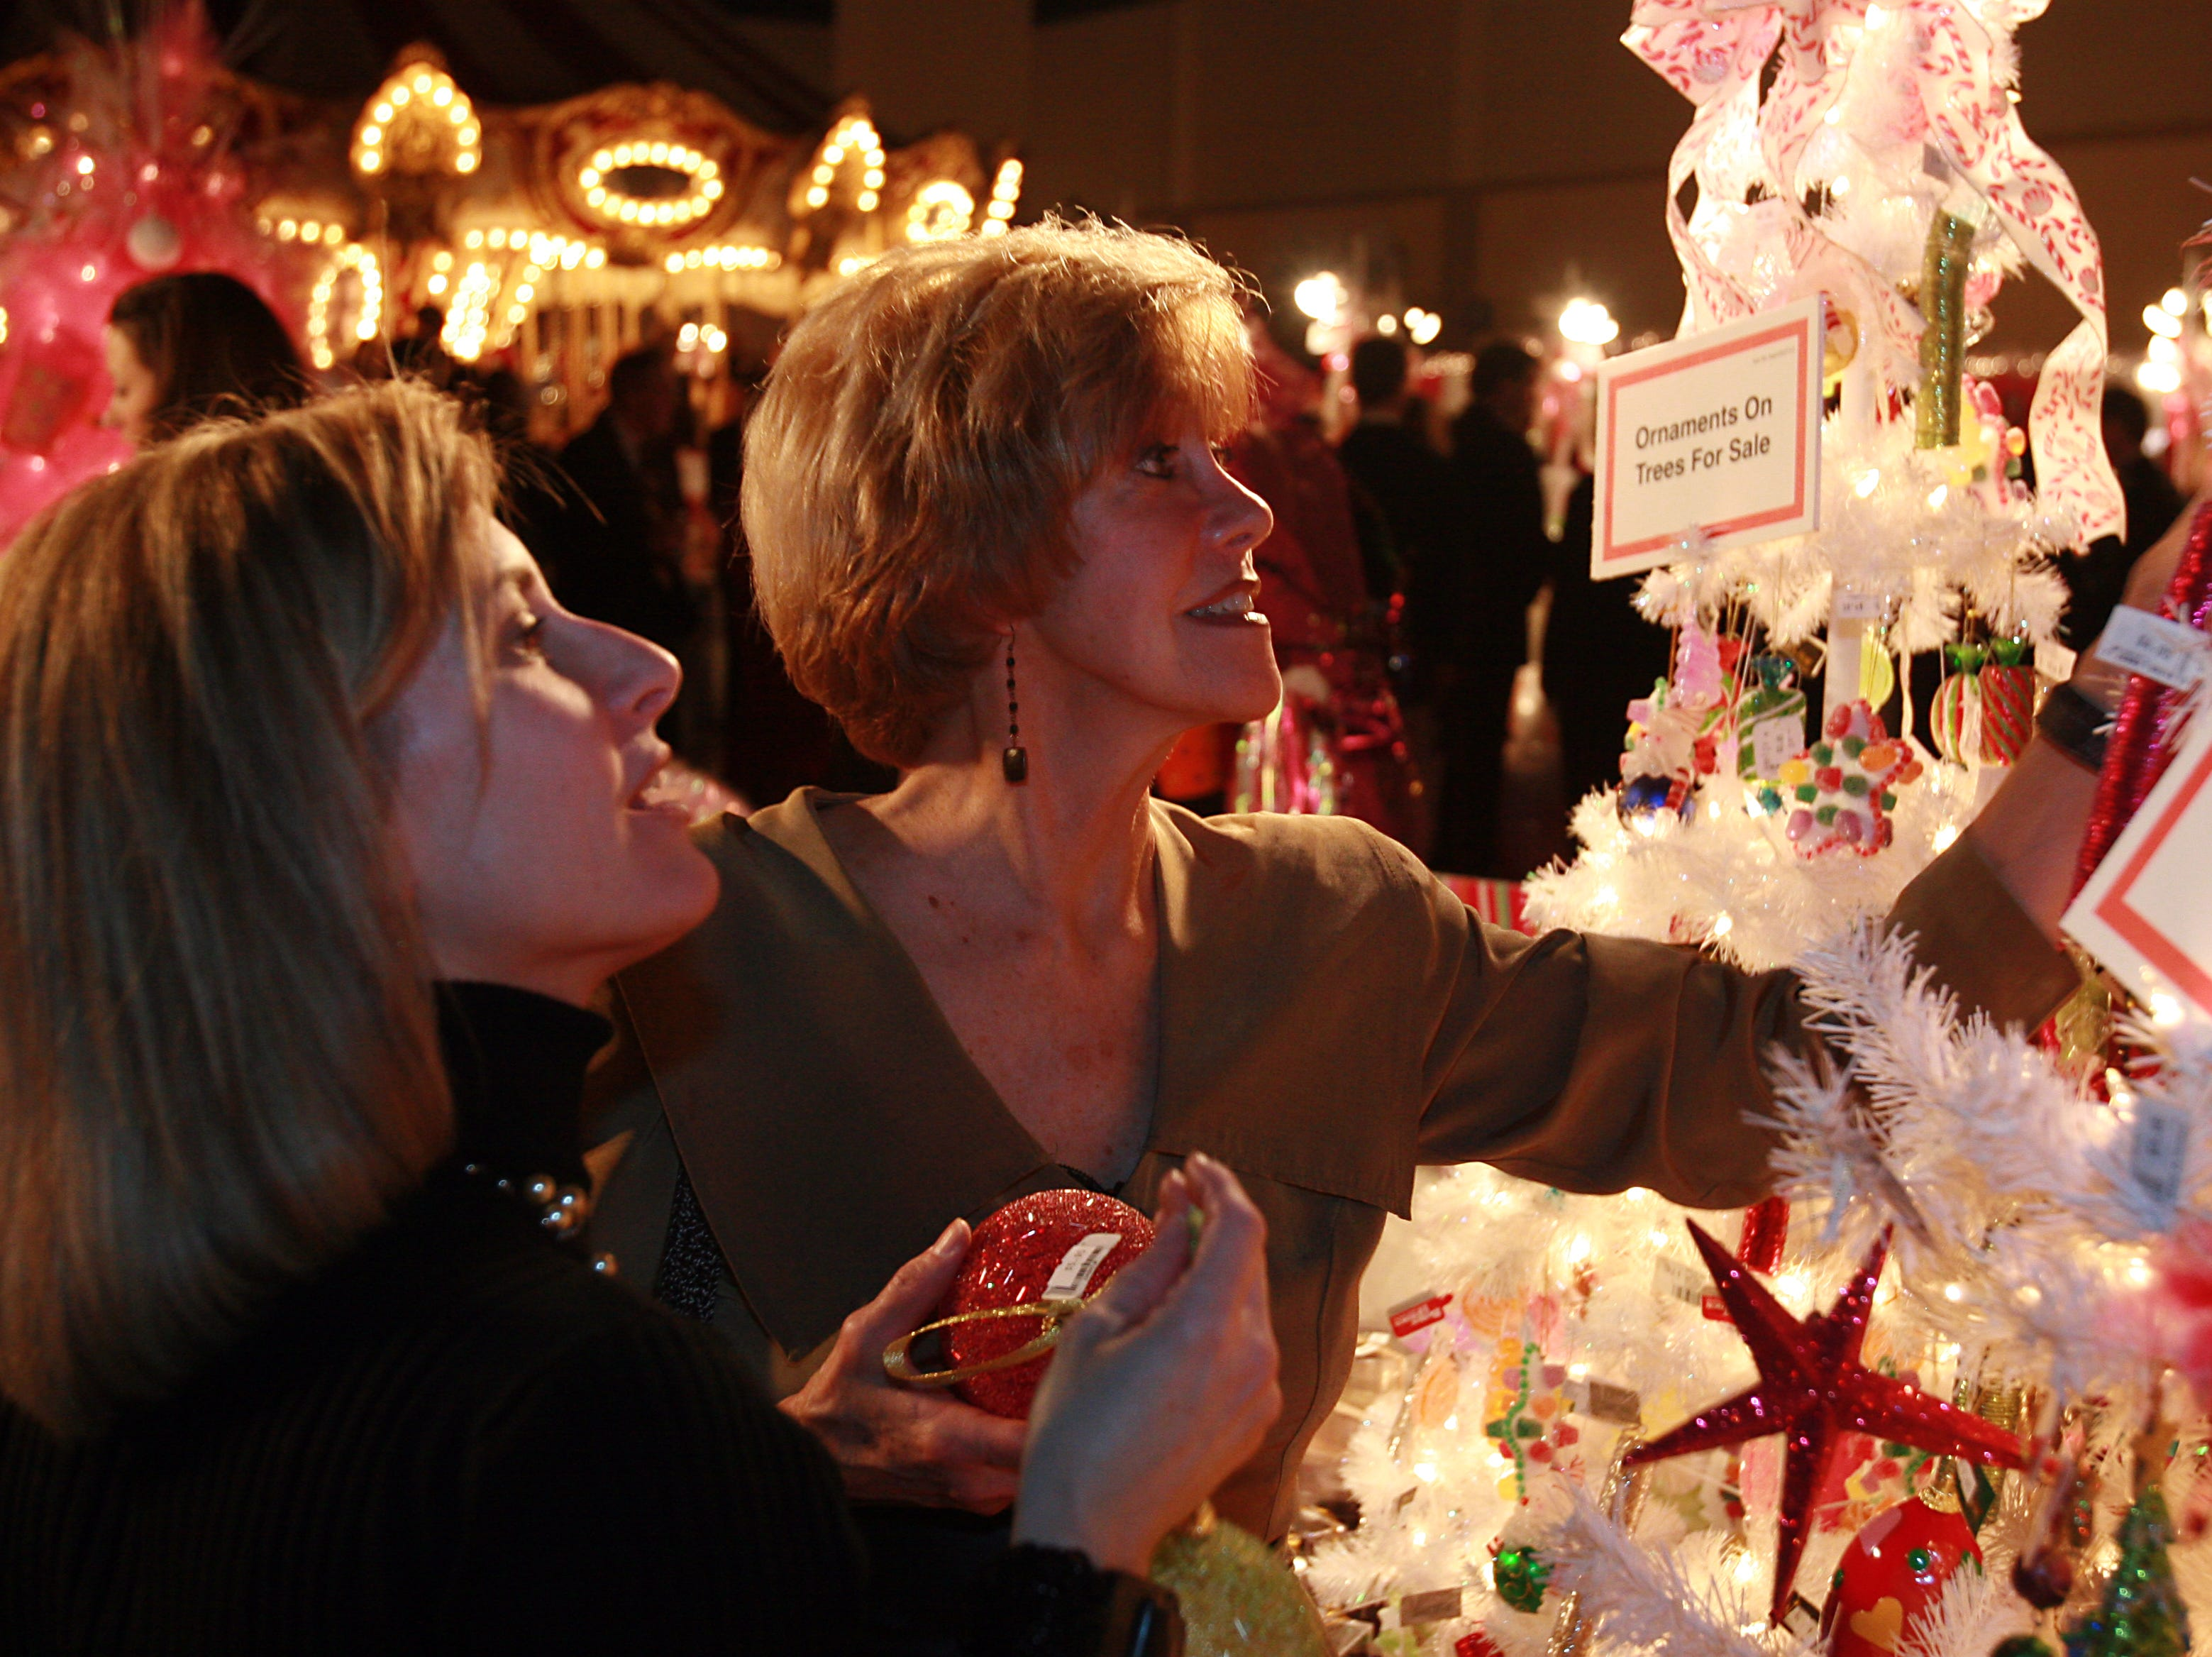 1126peop.BC#6768--LIVING--Wendy Hall, left, and Gale Hinton peruse through ornaments for sale at the Knoxville Convention Center on Tuesday, November 21.  The Convention Center hosted the Fantasy of Trees opening Gala to benefit Children's Hospital.  (Bryan Campbell/ Special to the News Sentinel)